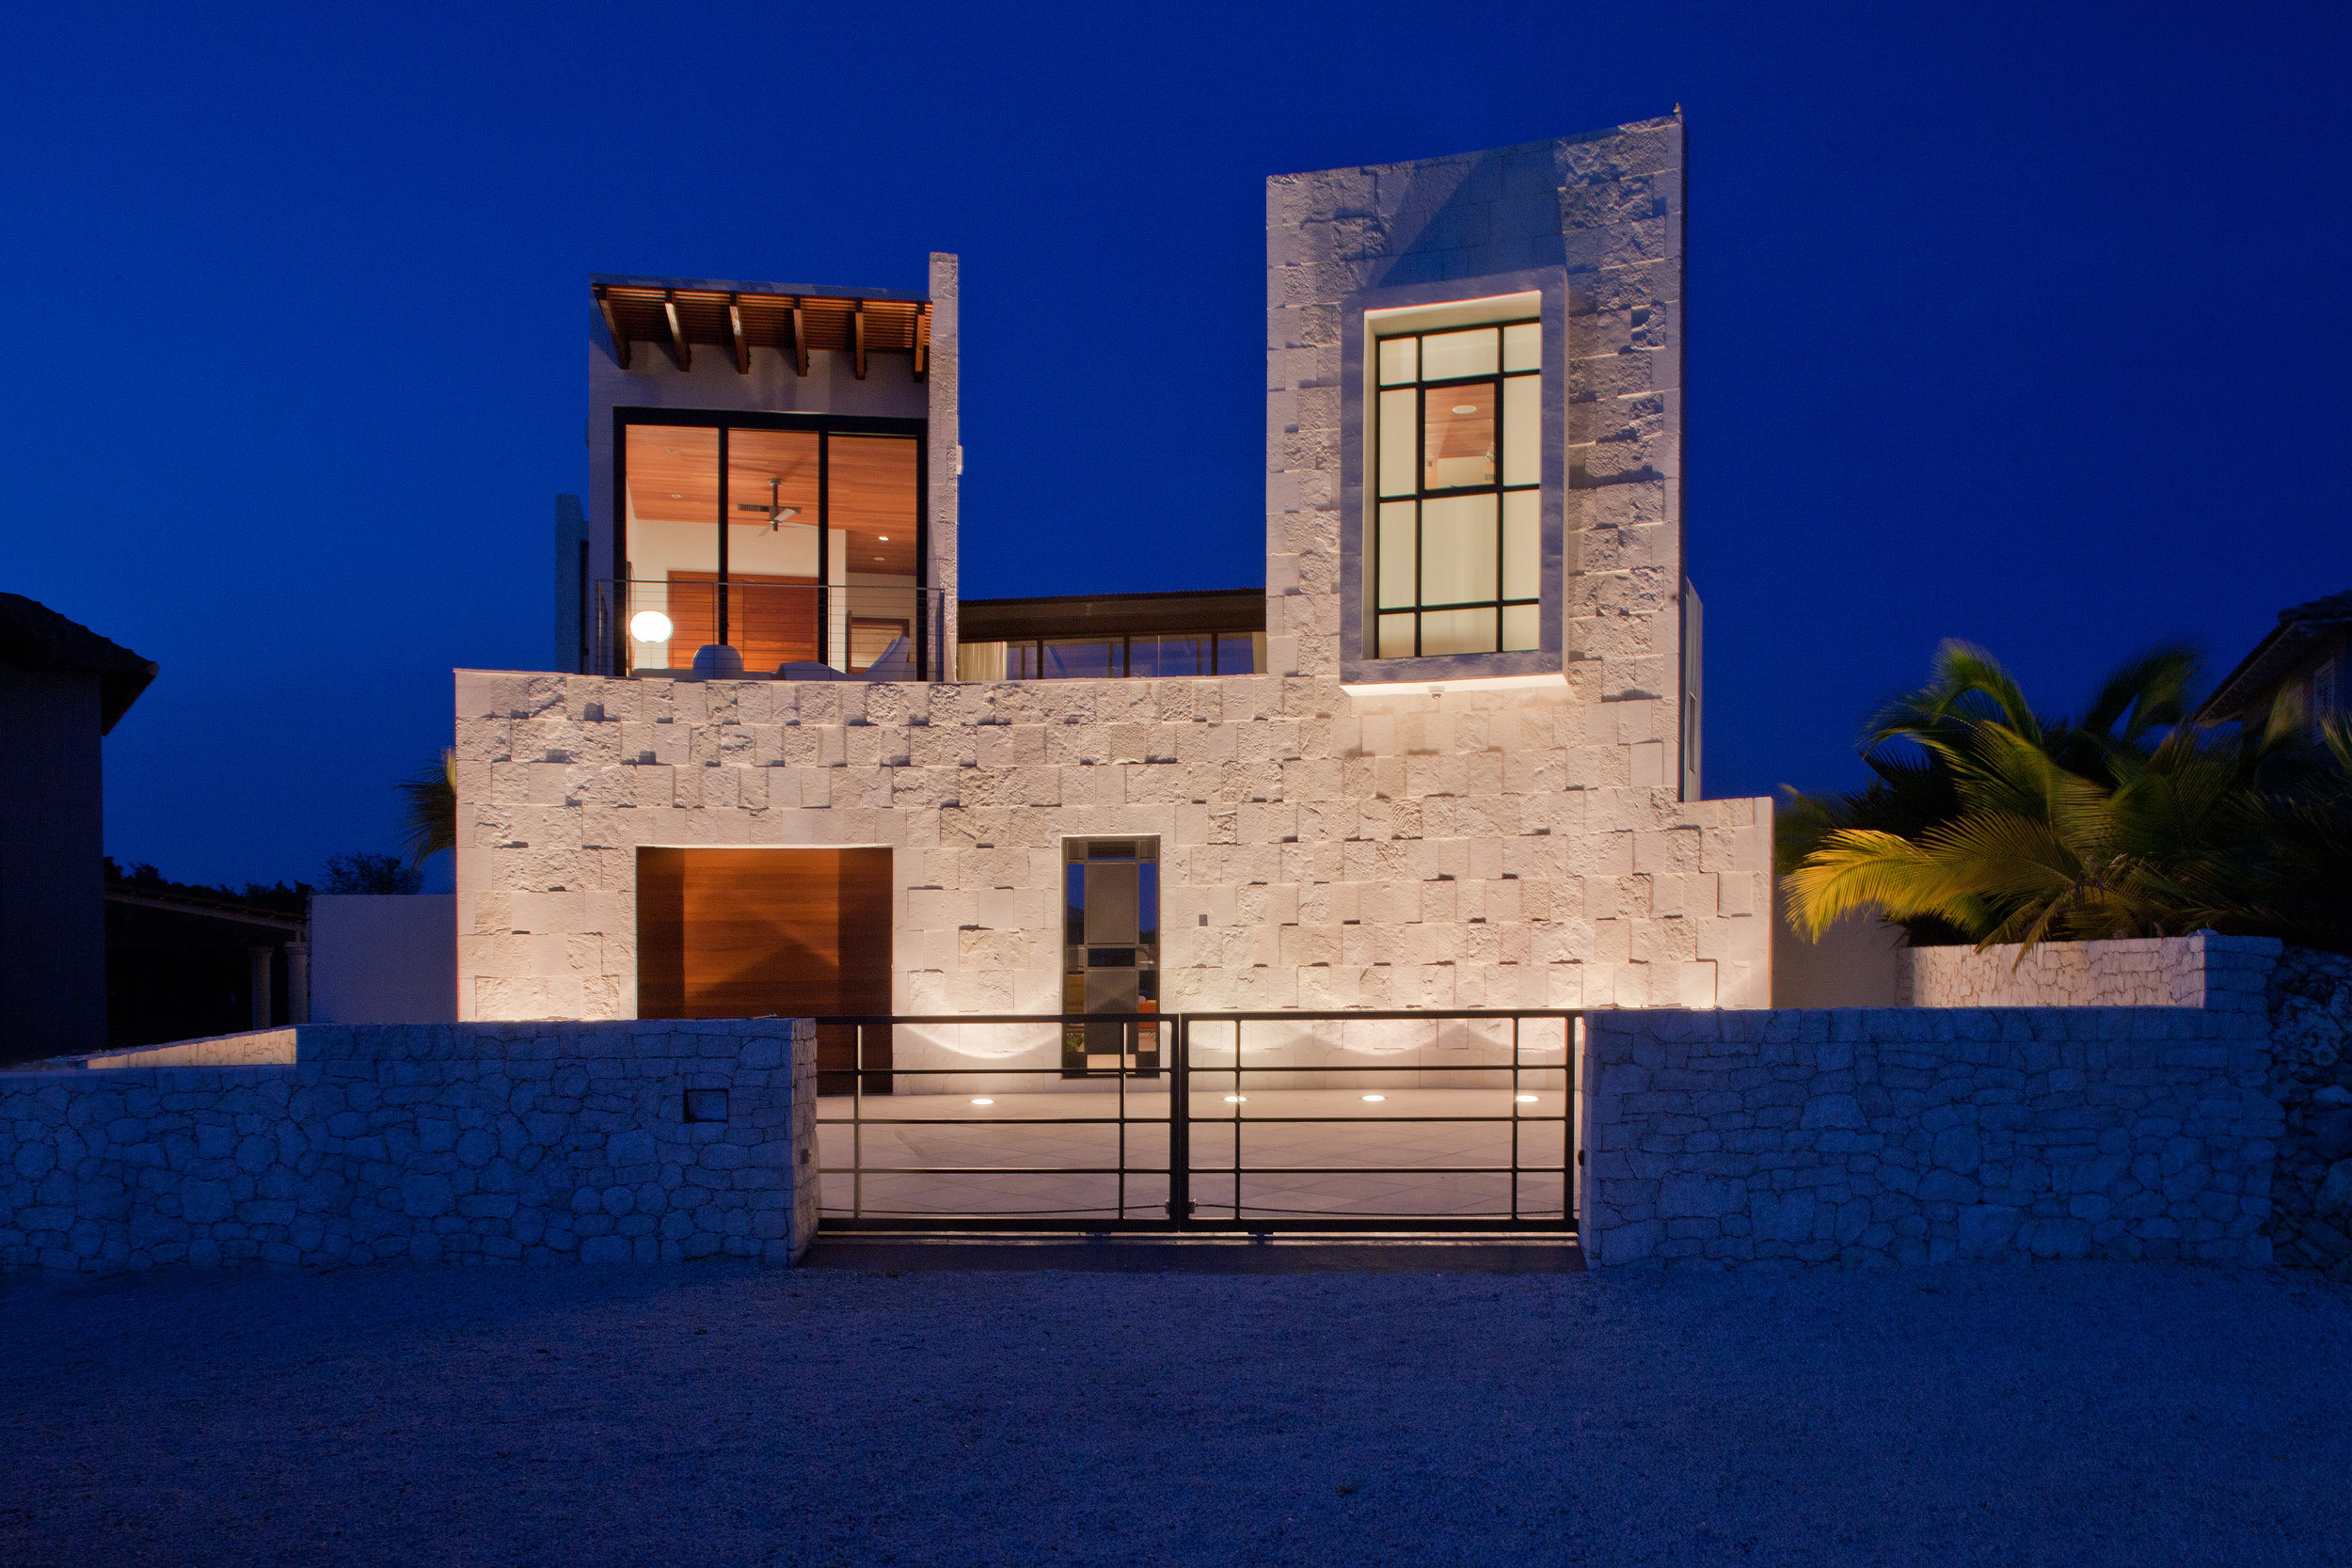 Bonaire Residence by Silberstein Architects Photo by Robin Hill (c) HI RES (8).jpg